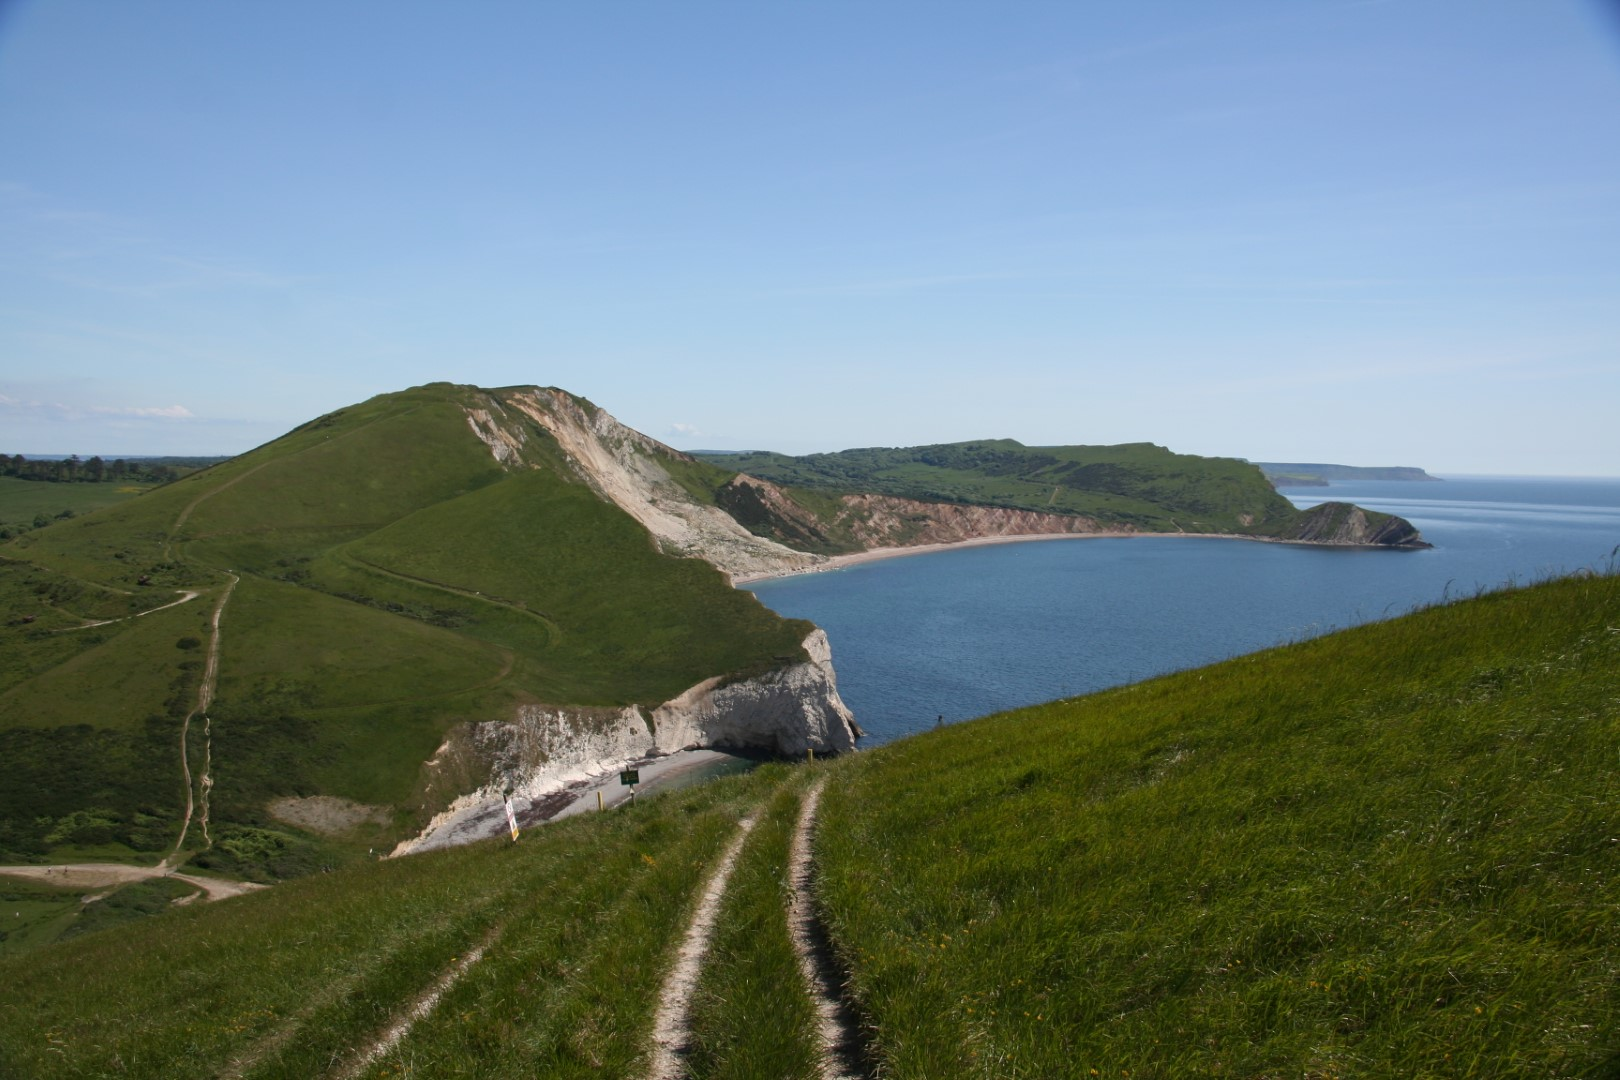 View of the coast path on the way back.